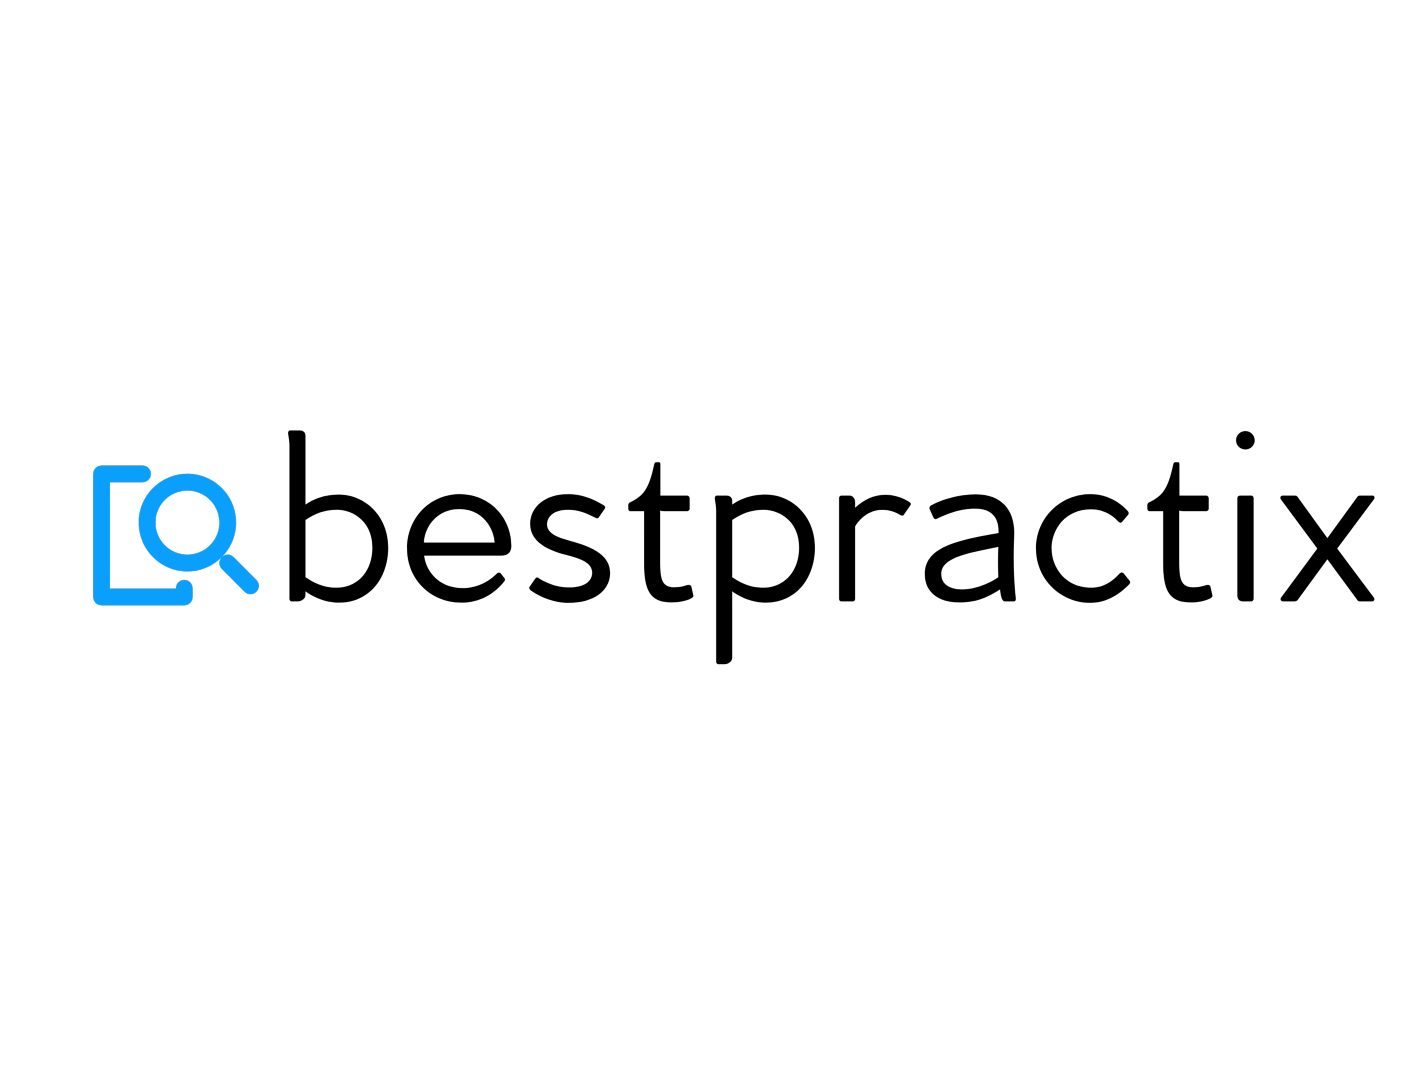 Bestpractix – The future of legal contract drafting!